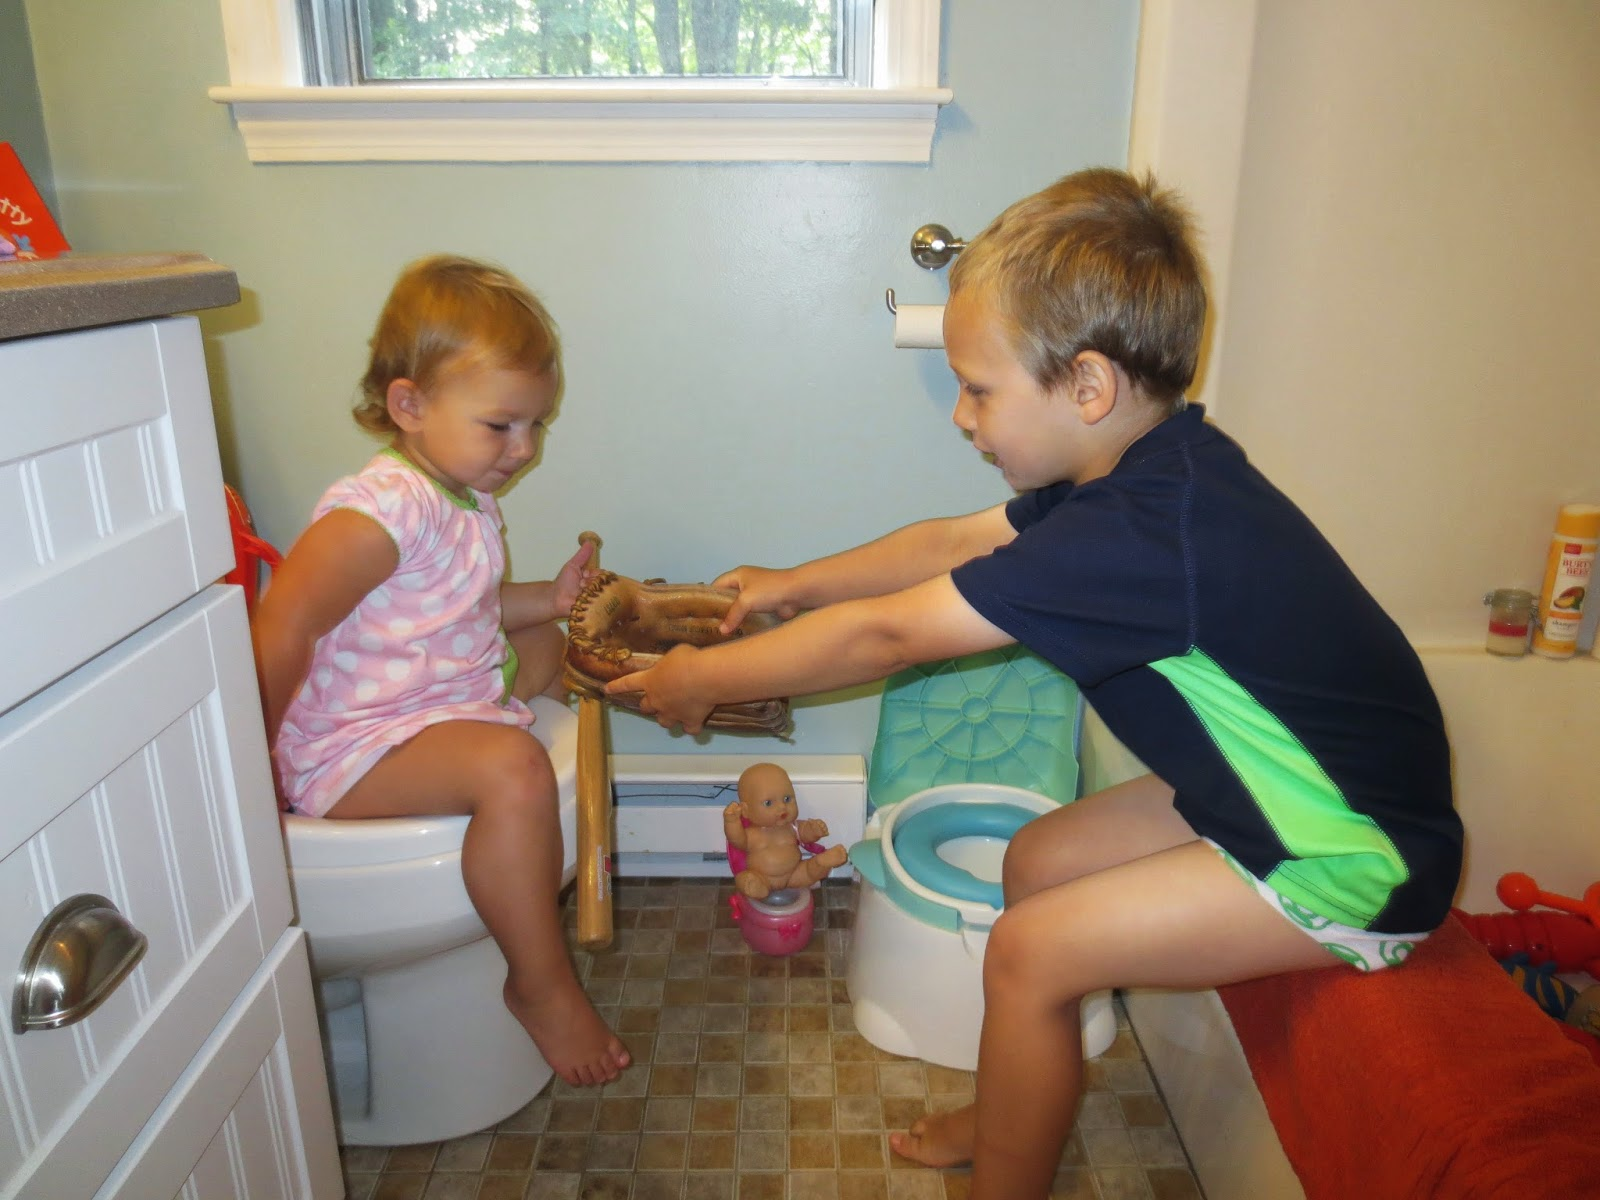 Sister watches brother pee